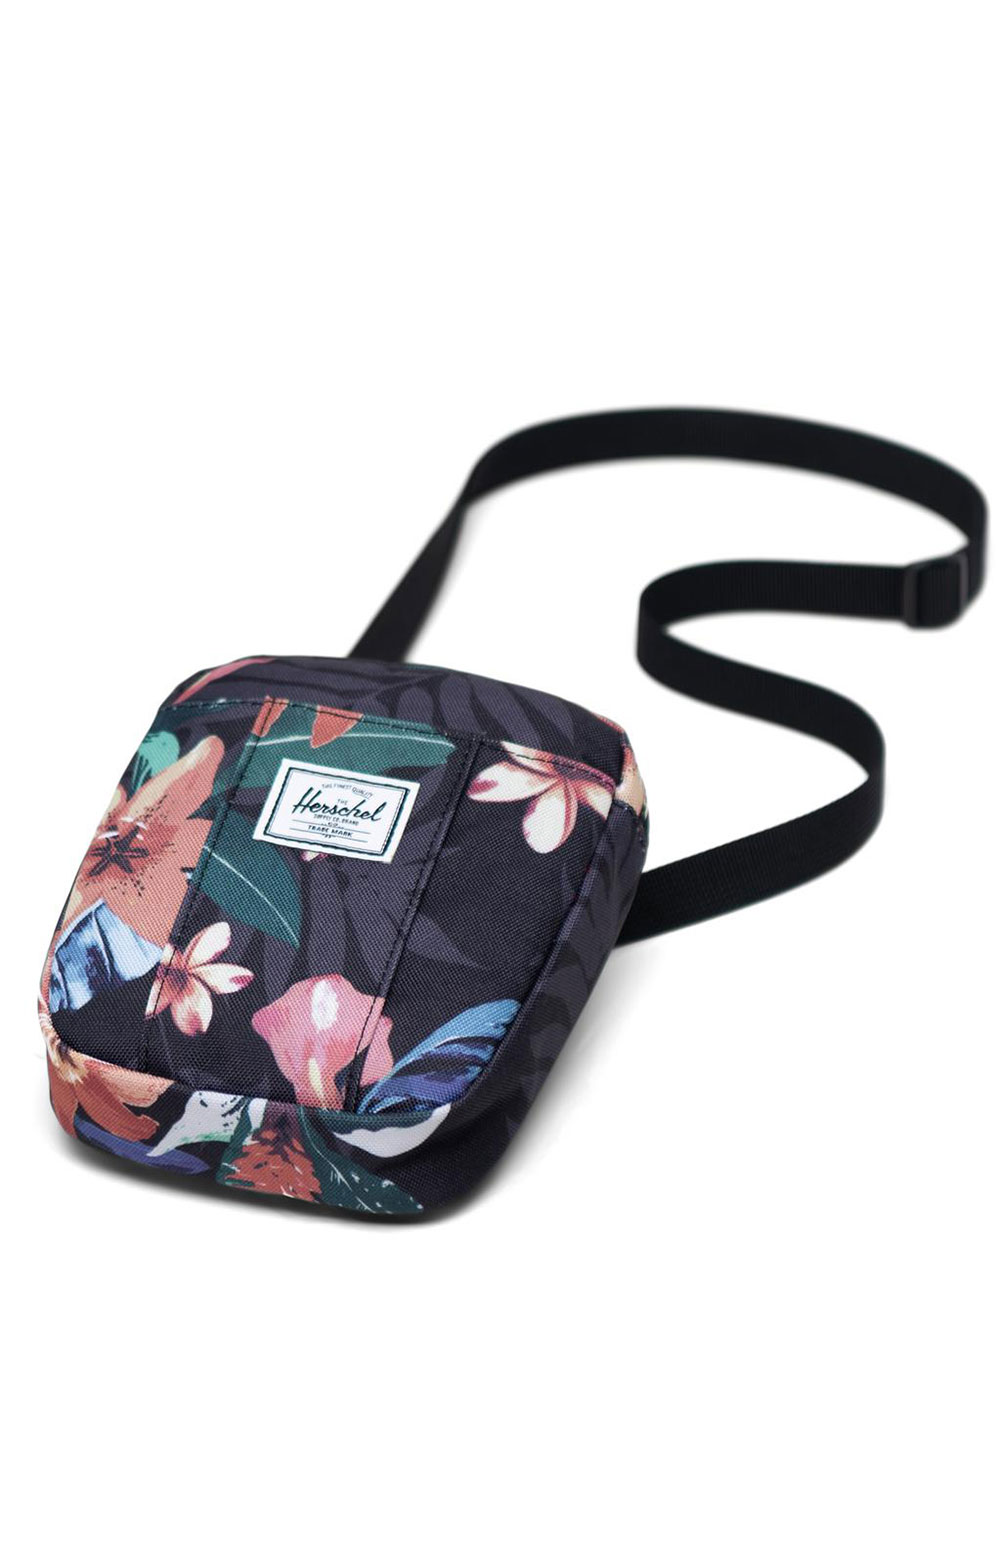 Cruz Crossbody Bag - Summer Floral Black  2